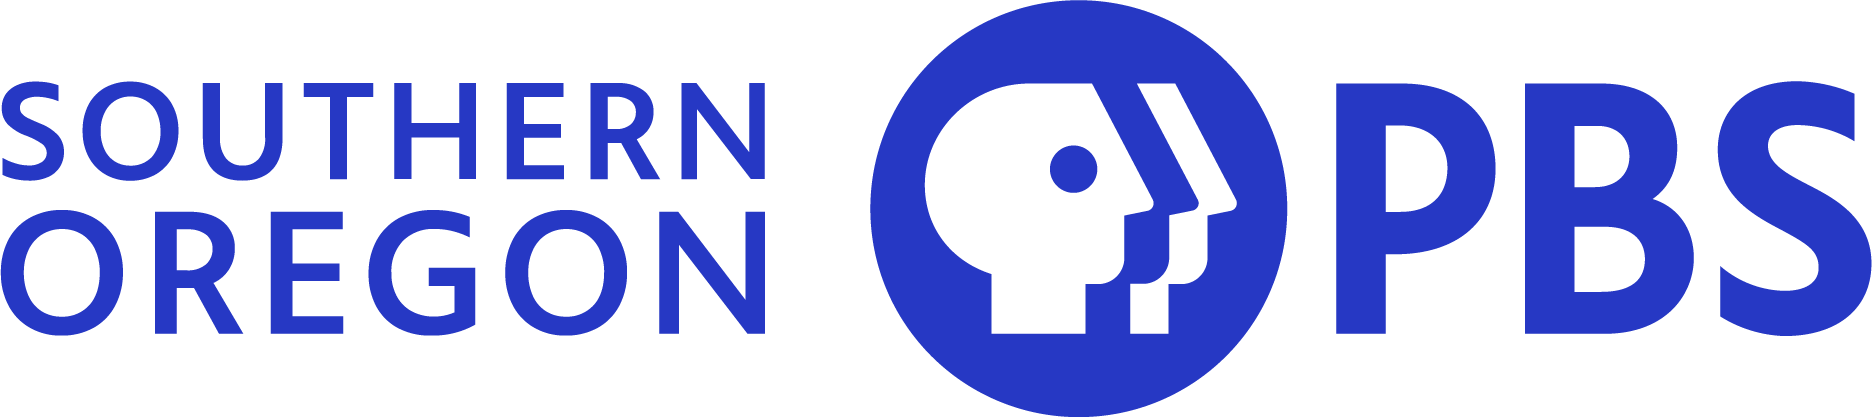 Southern Oregon PBS Logo